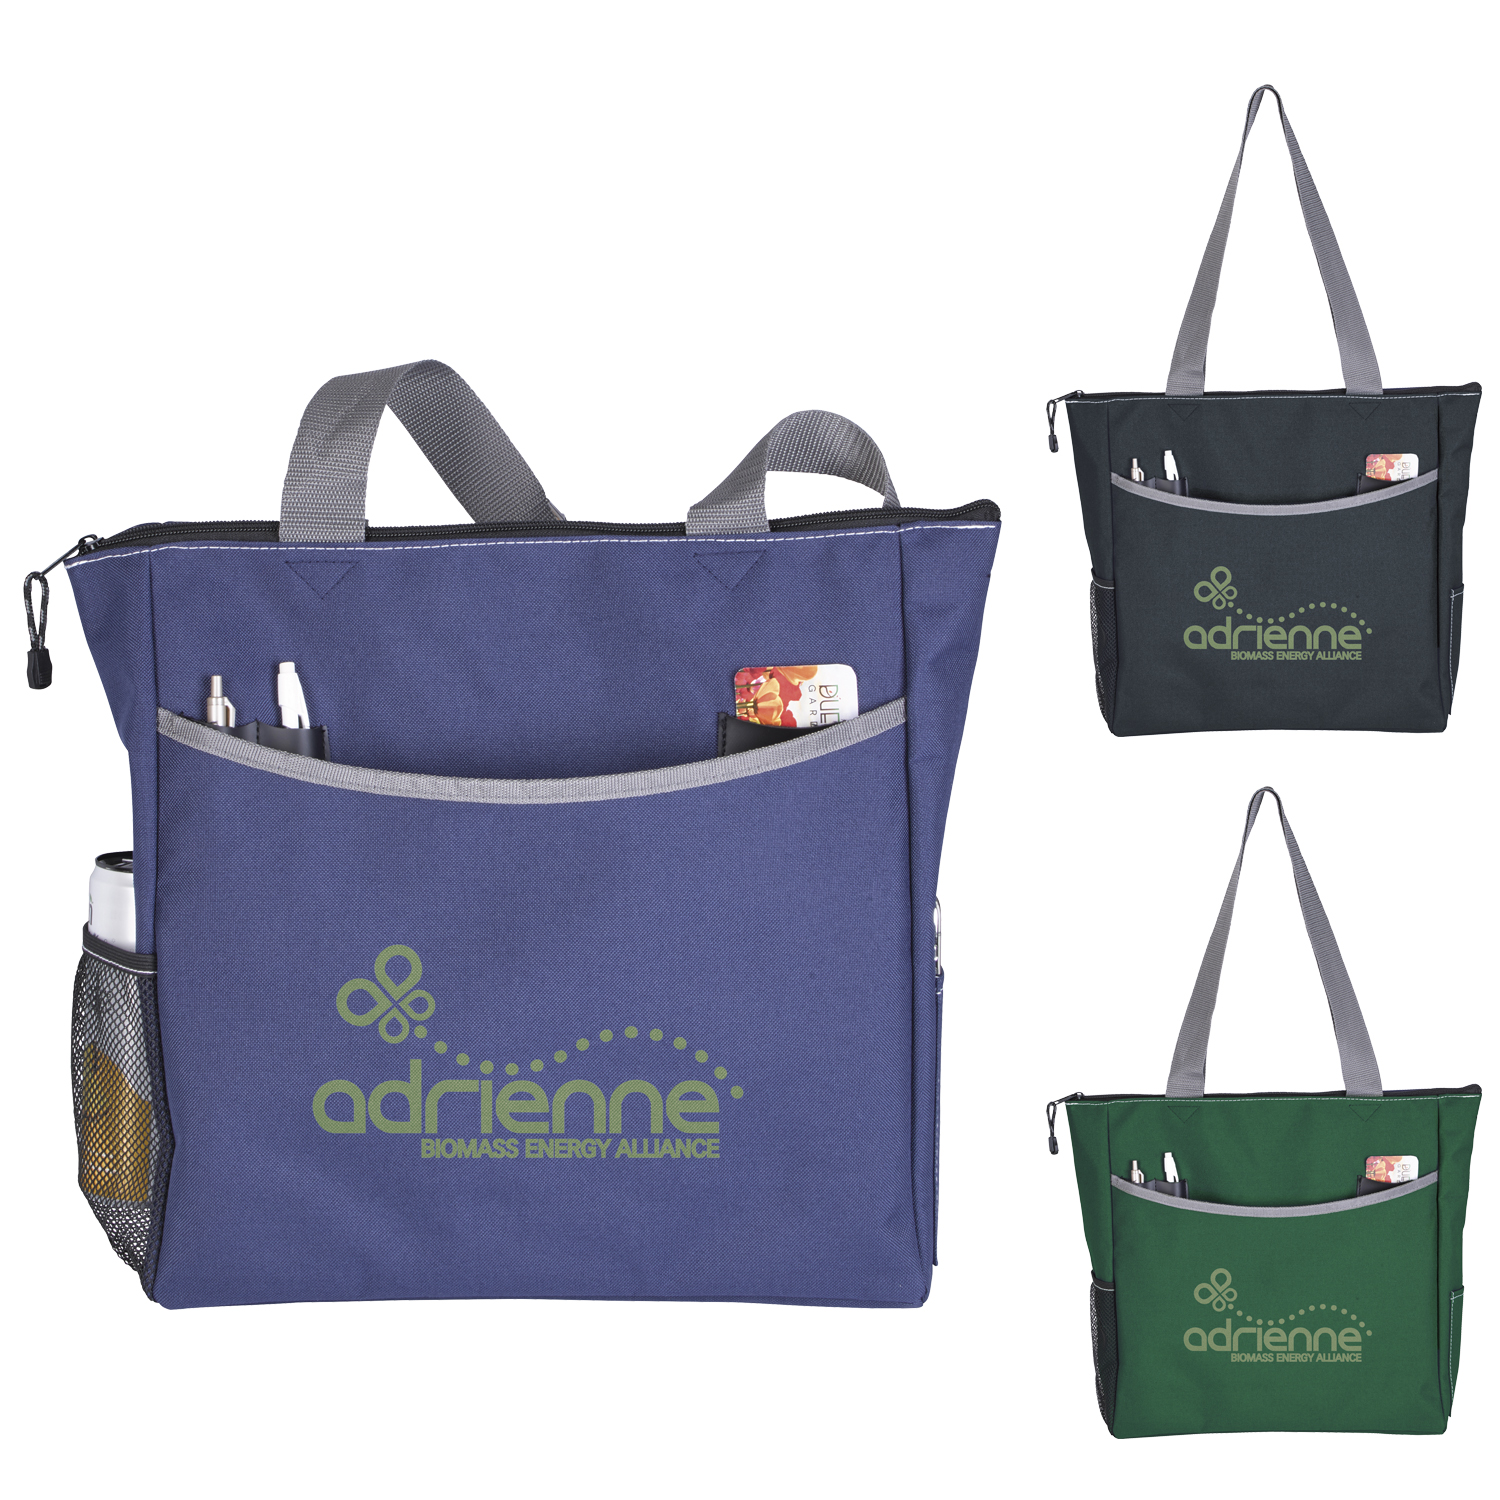 Atchison TranSport It Eco Tote Bag - 1 Colour Imprint